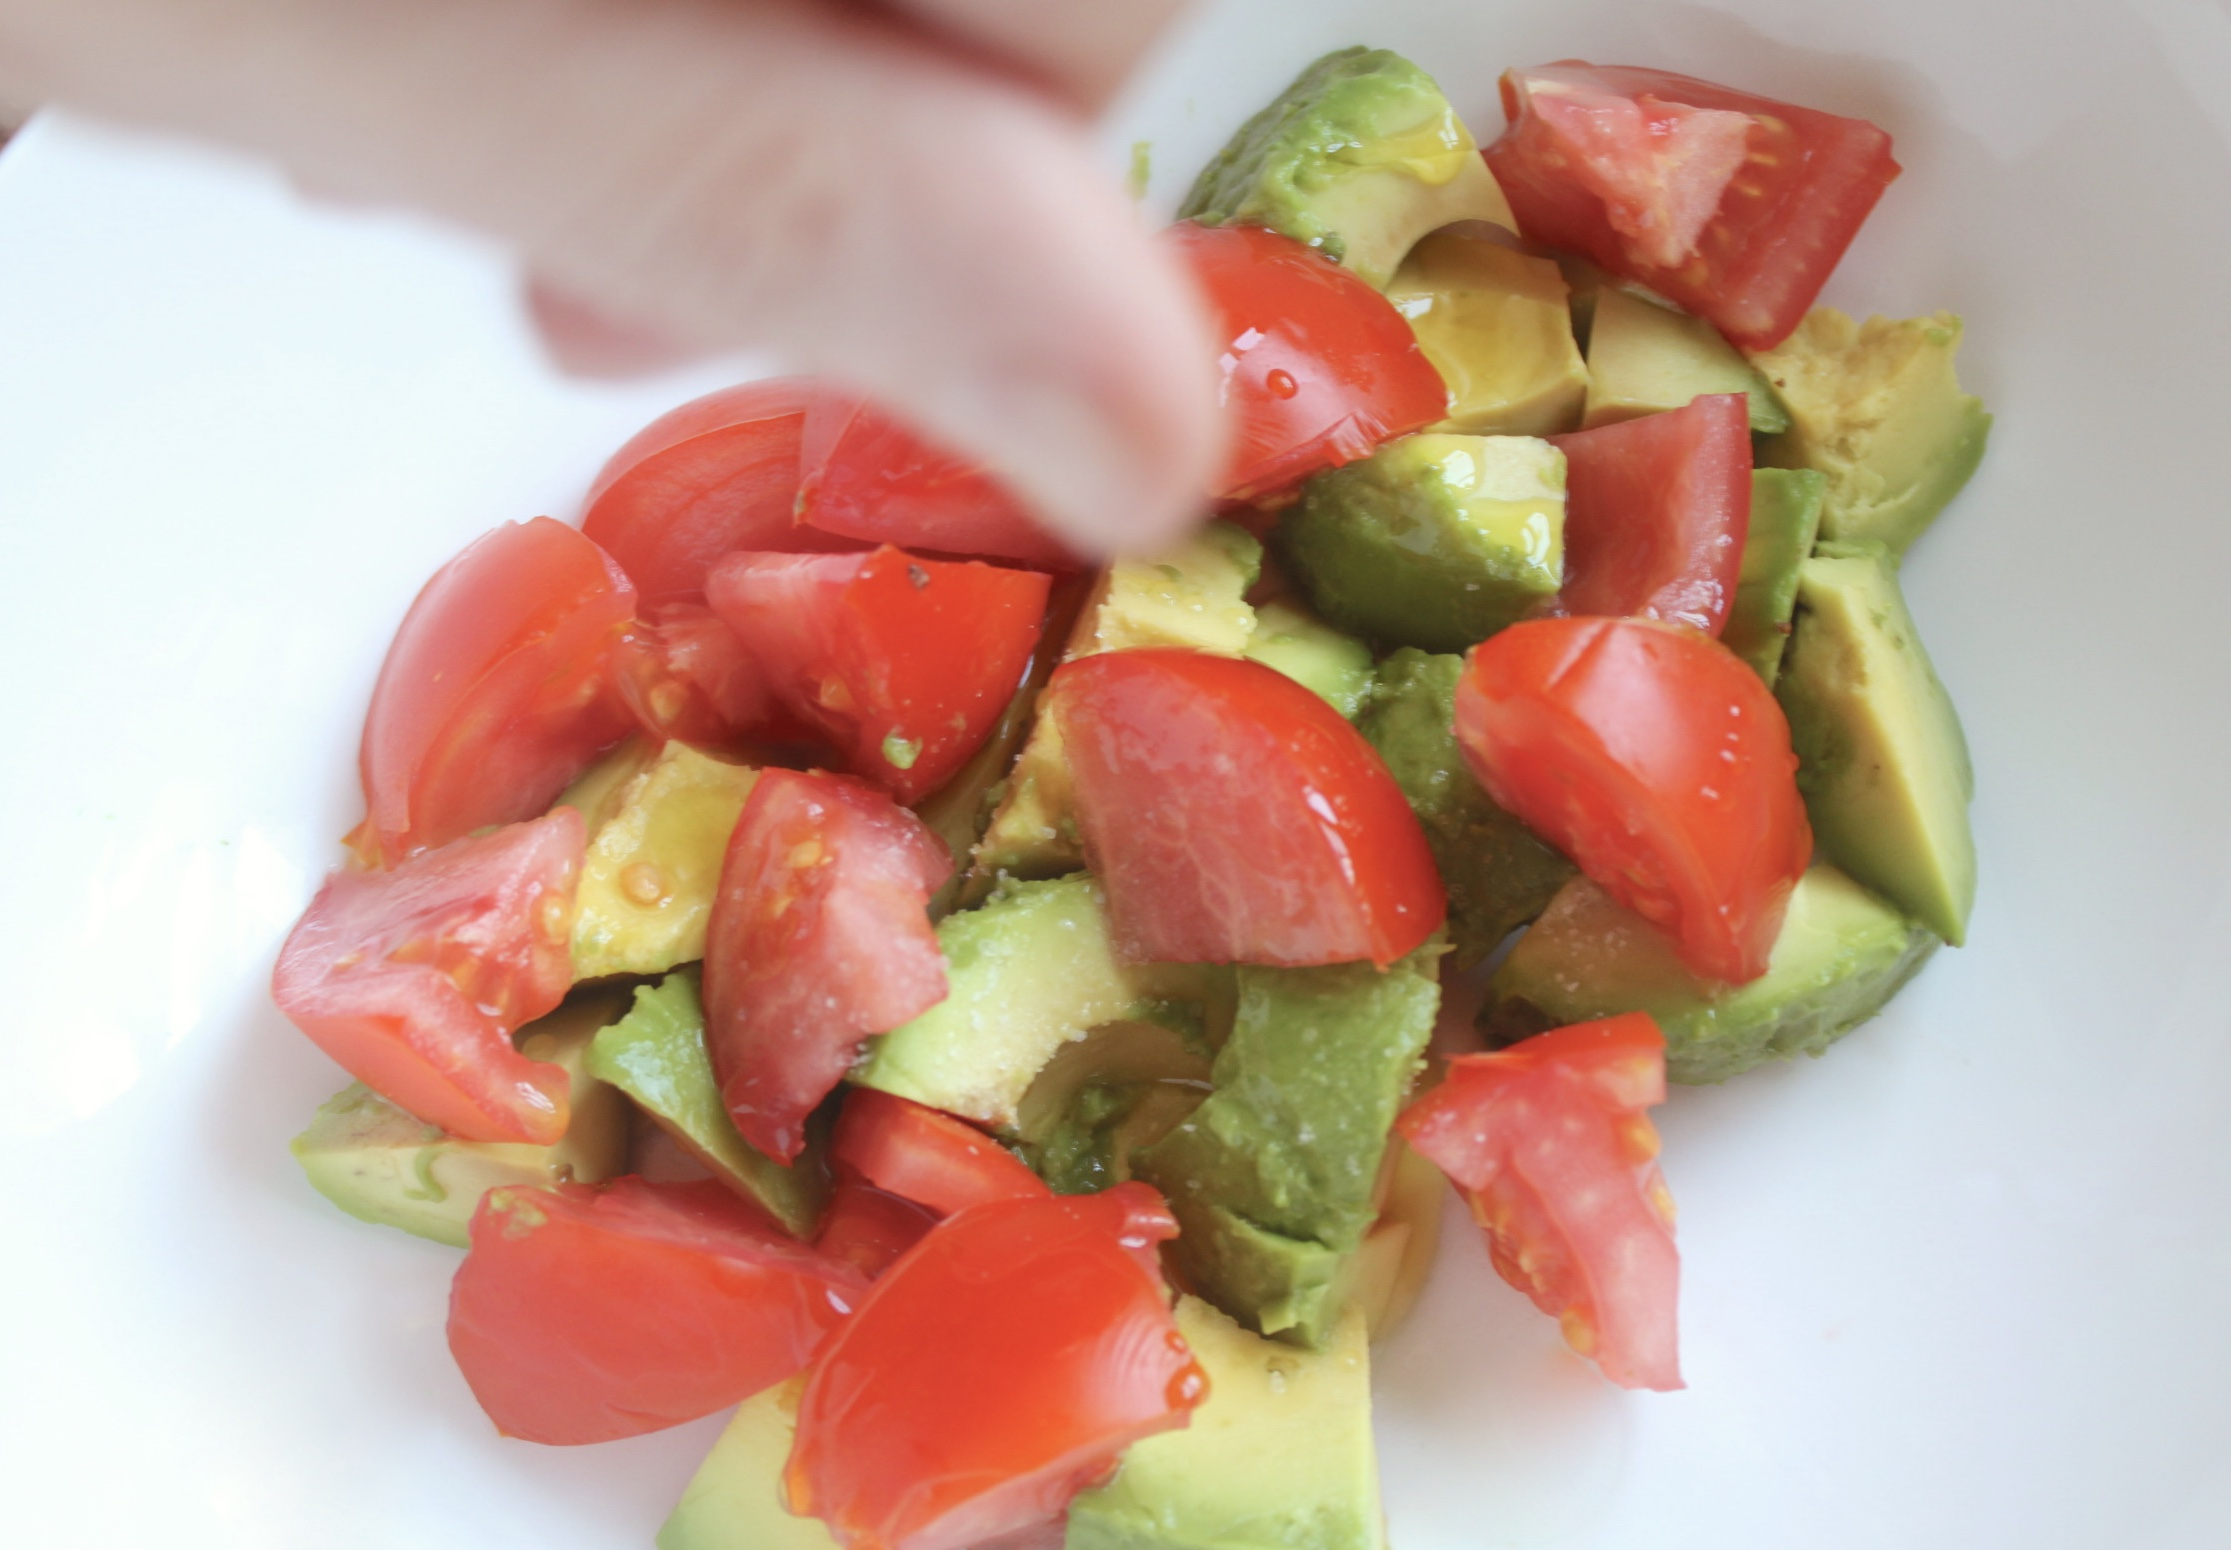 adding salt to avocado and tomato salad